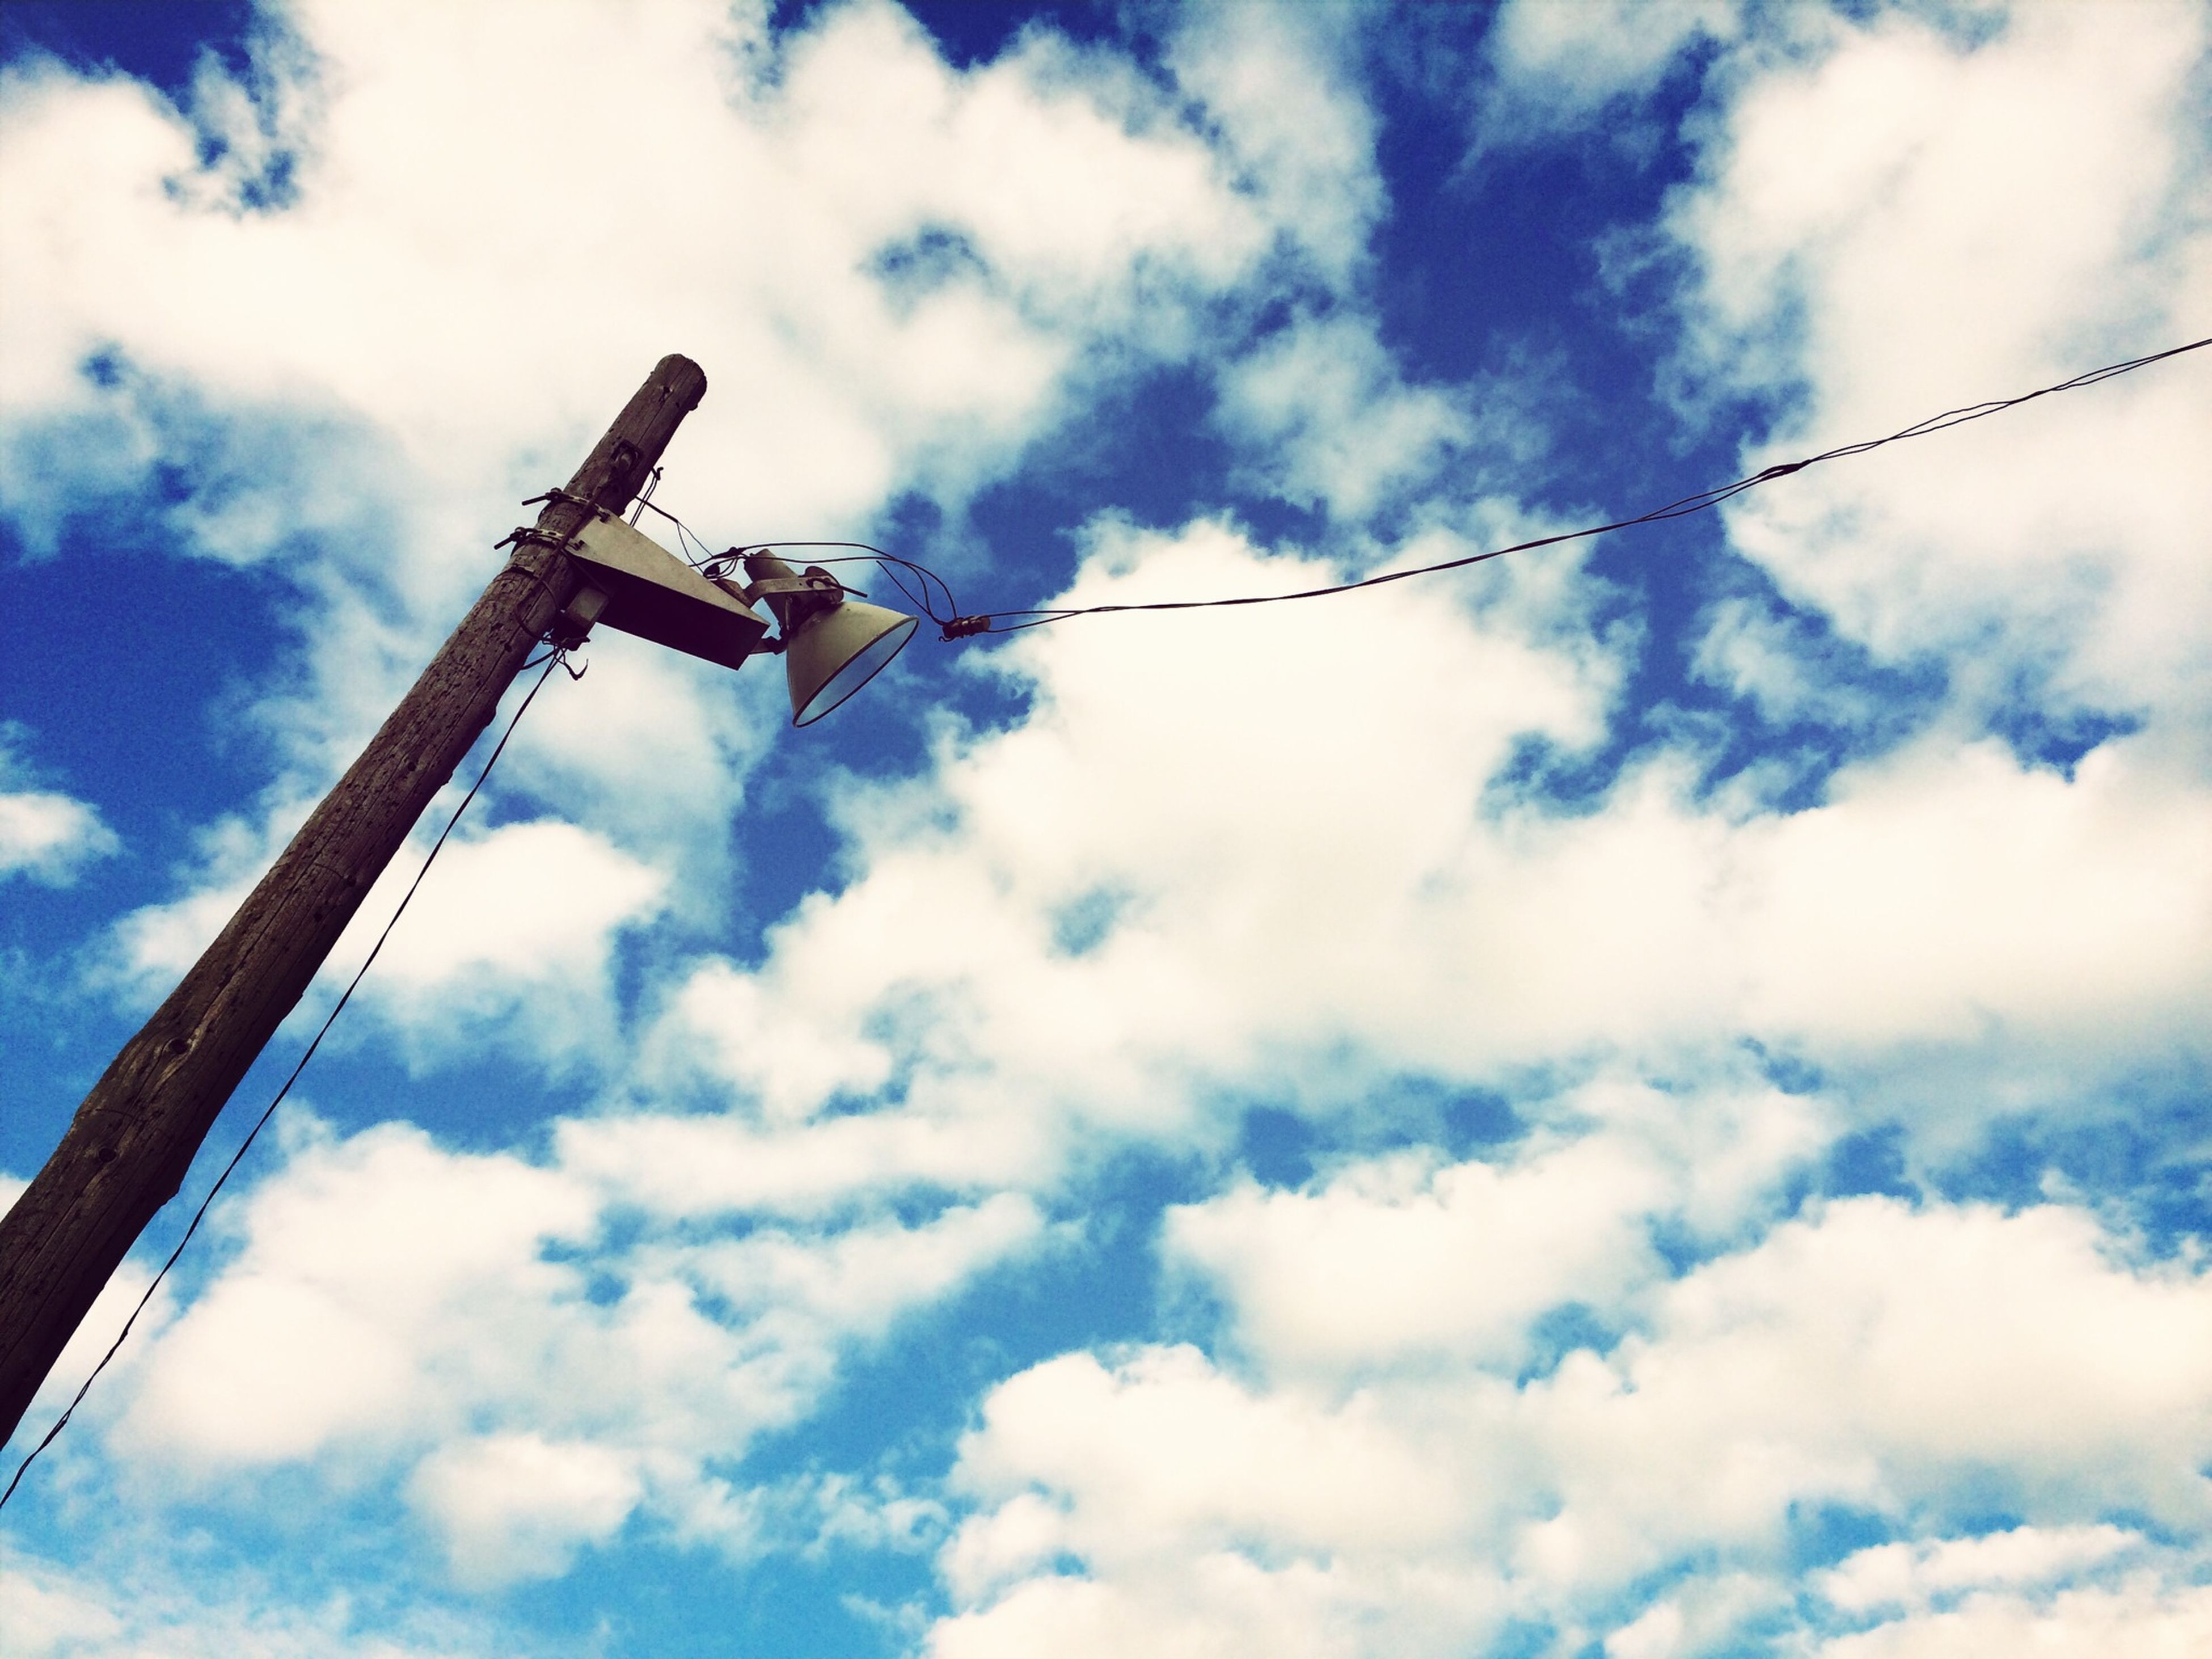 low angle view, sky, cloud - sky, cloudy, fuel and power generation, cloud, technology, electricity, connection, day, outdoors, no people, metal, crane - construction machinery, environmental conservation, lighting equipment, industry, pole, cable, power supply